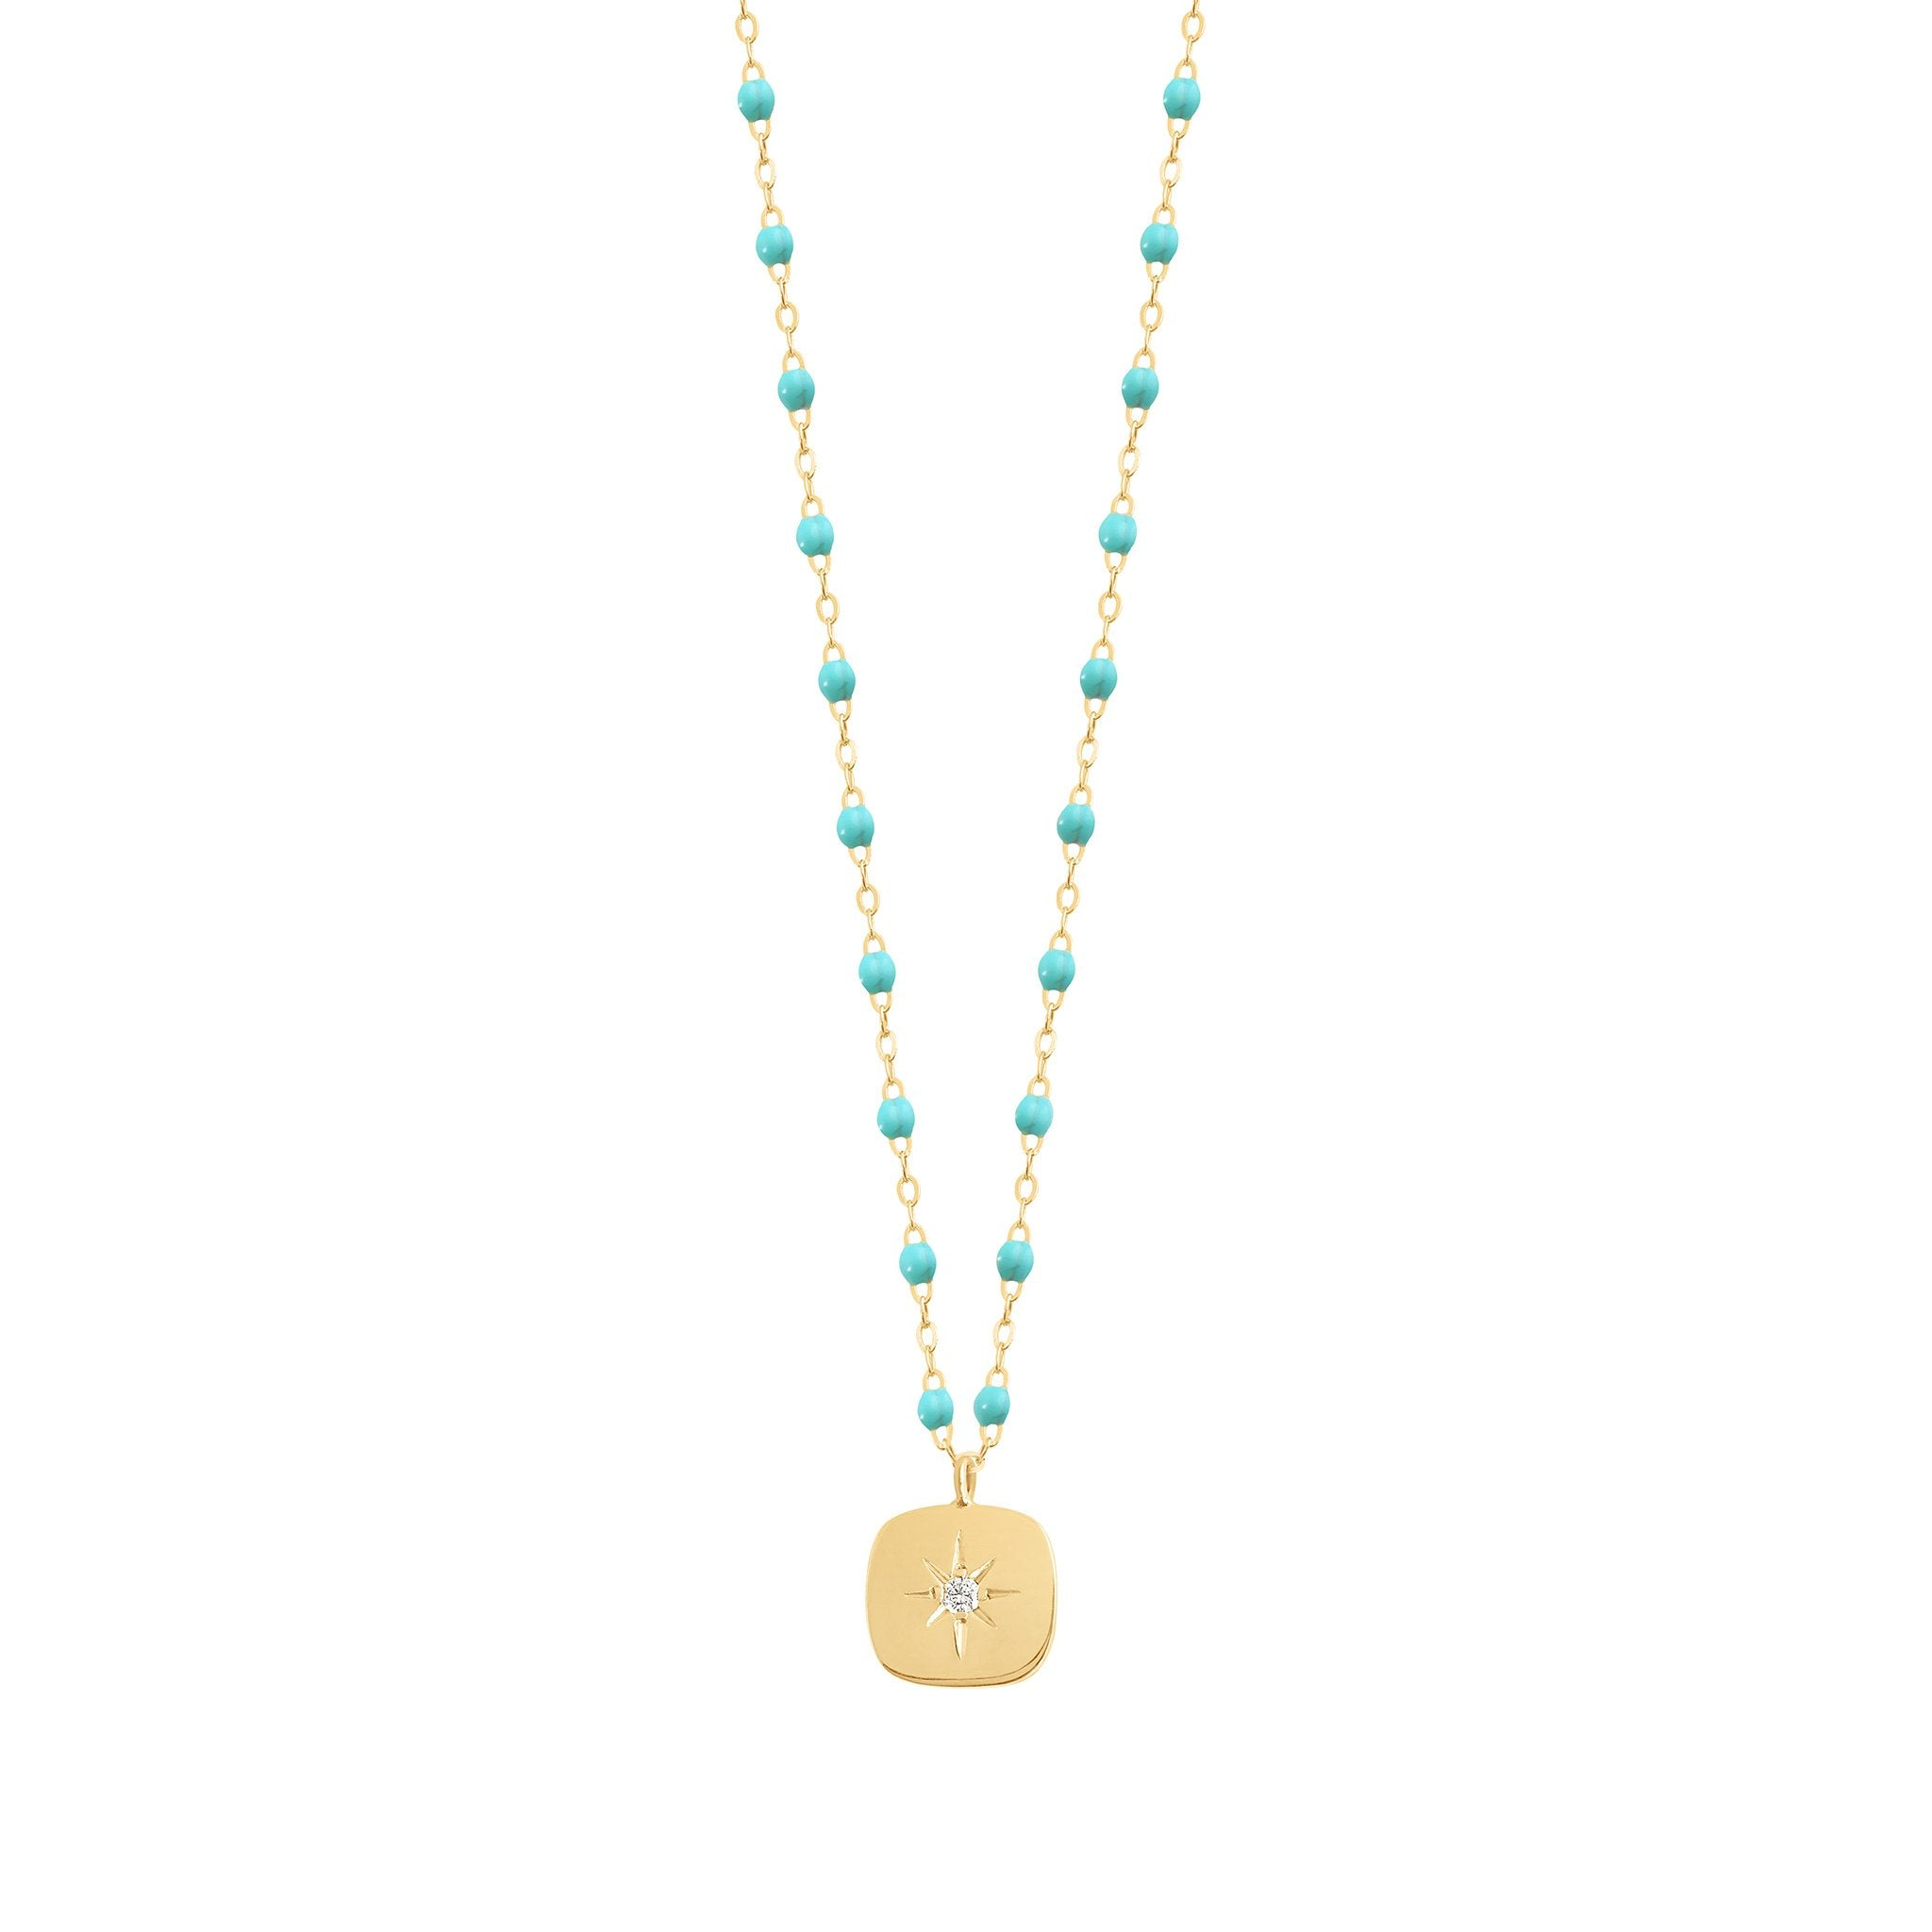 Gigi Clozeau - Miss Gigi Turquoise Green diamond necklace, Yellow Gold, 16.5""